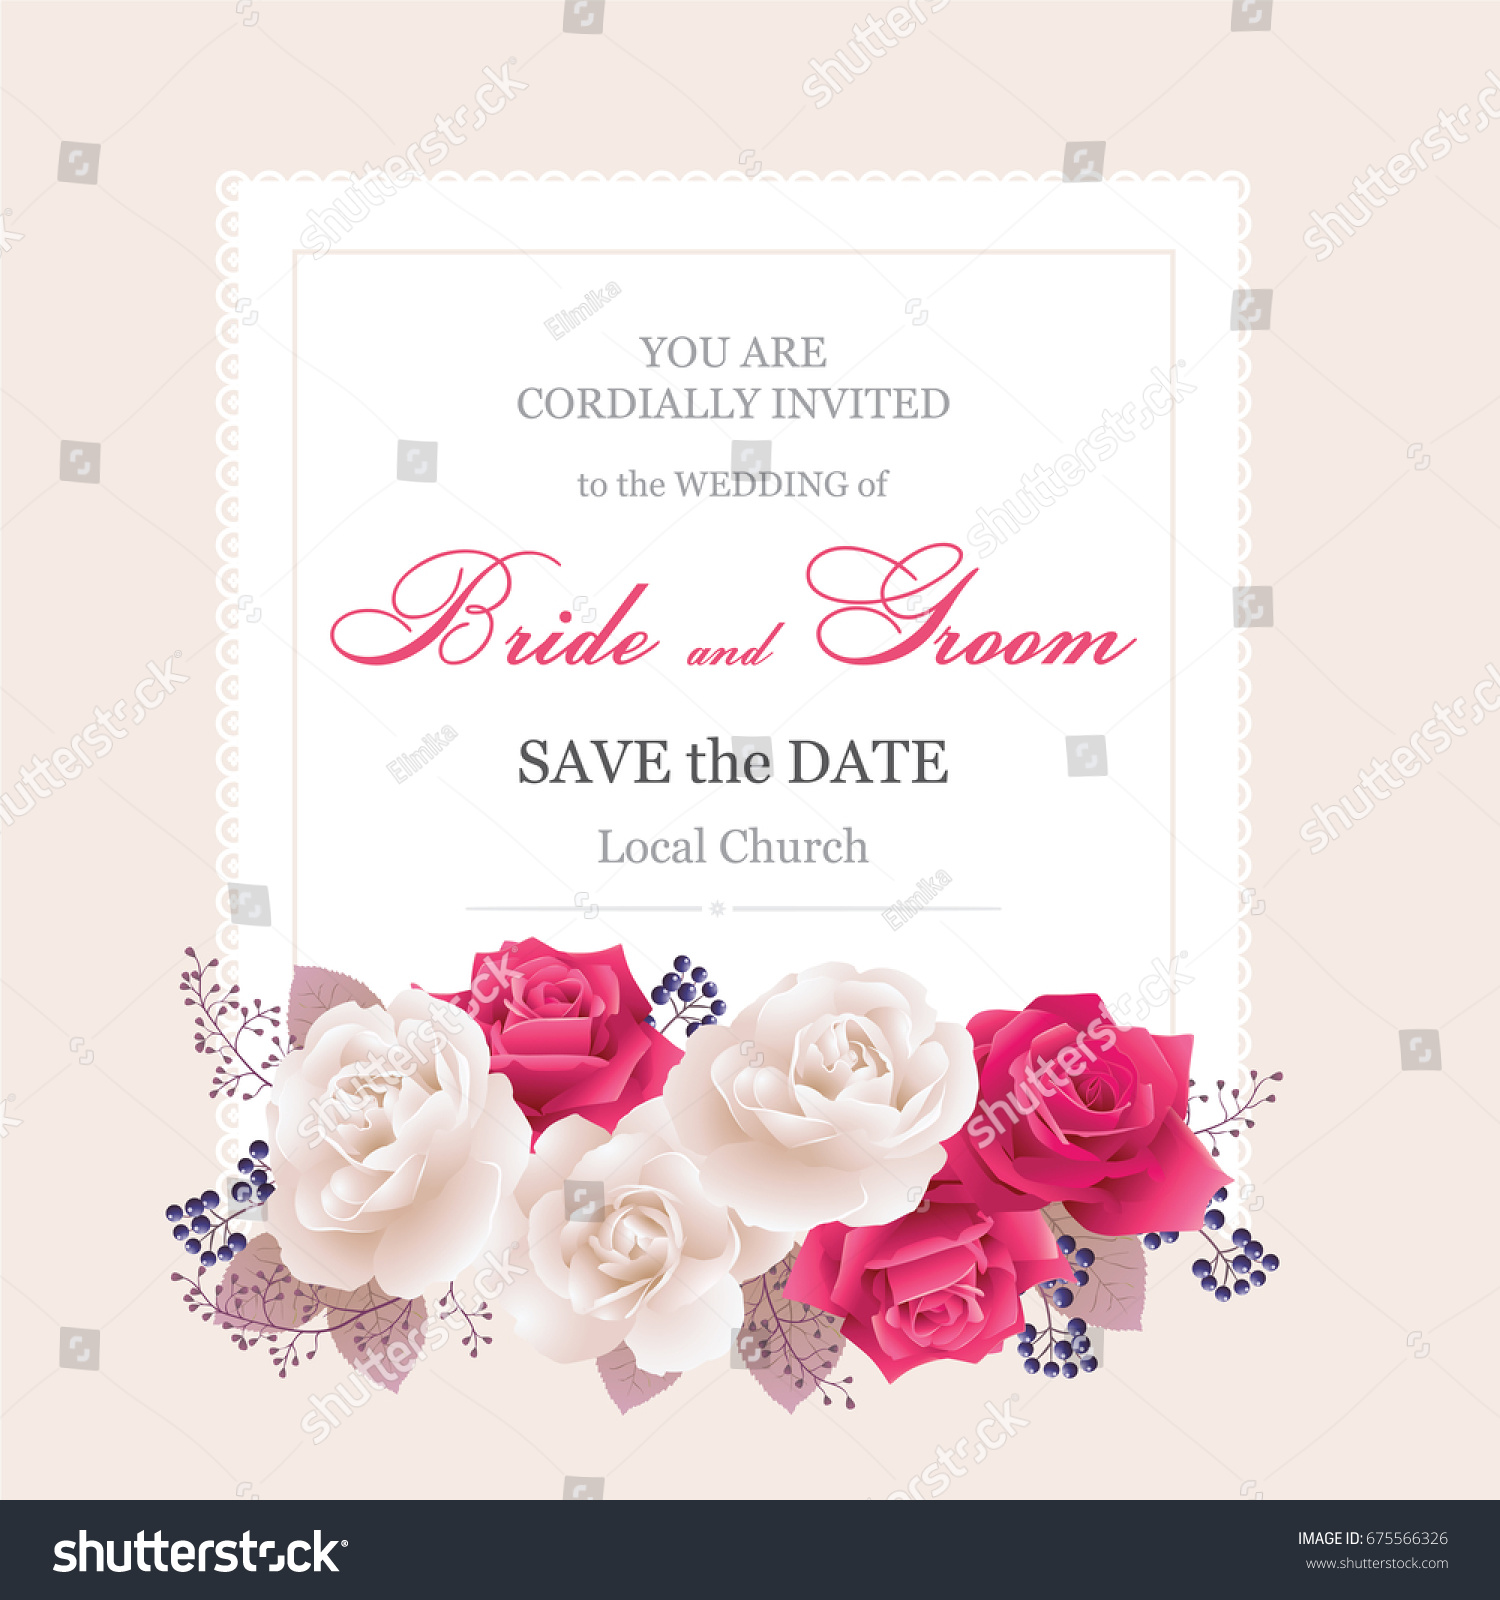 Wedding Invitation Cards Roses Beautiful White Red Stock Vector ...